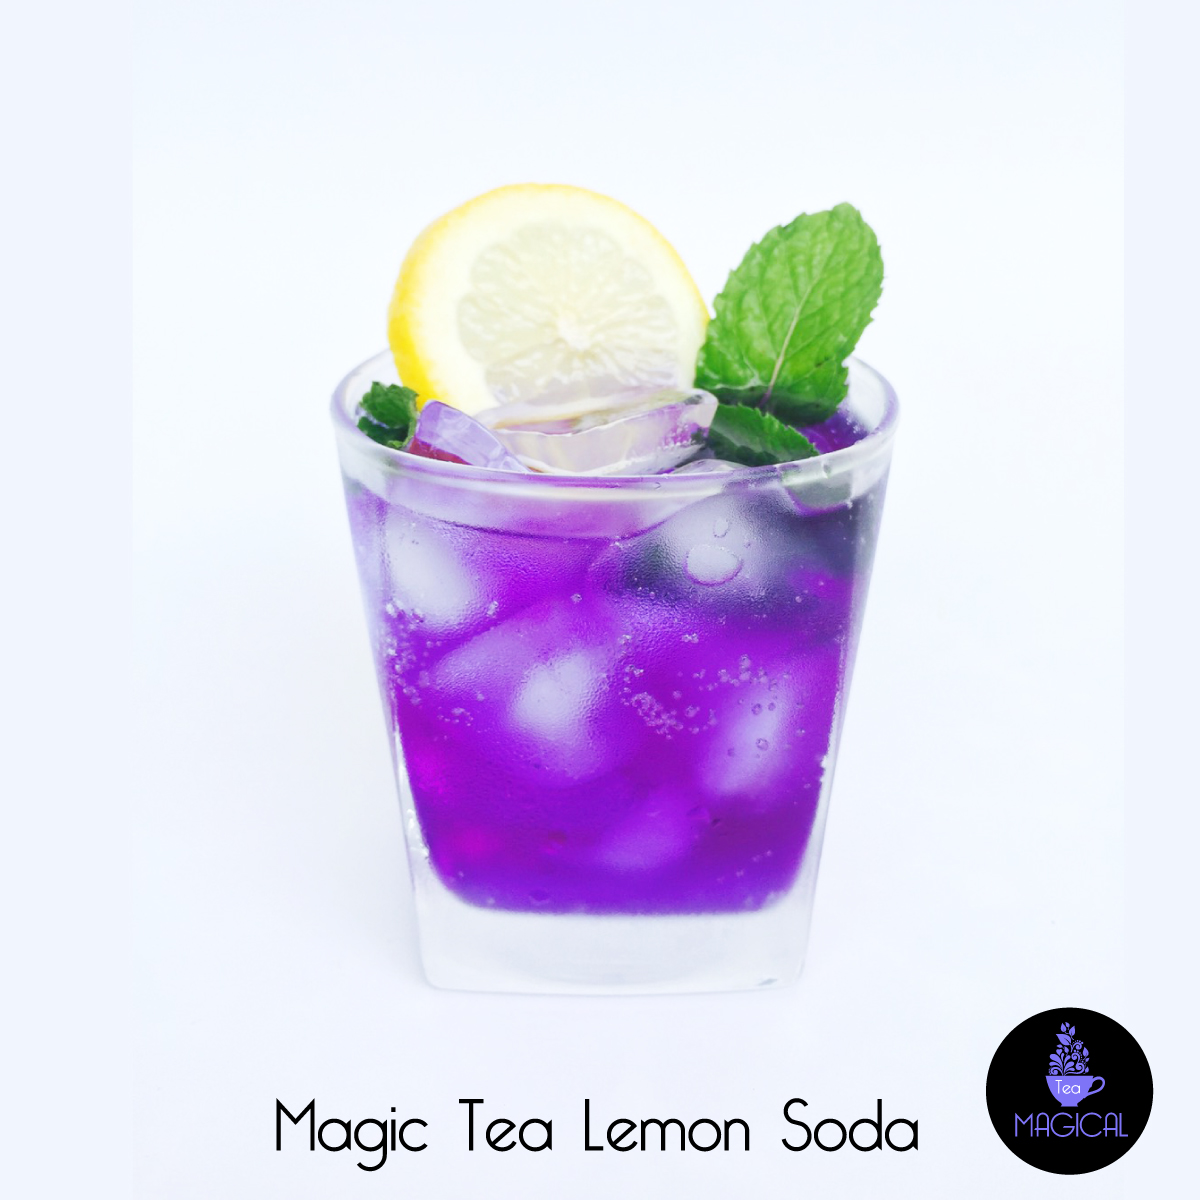 Magic Tea Lemon Soda